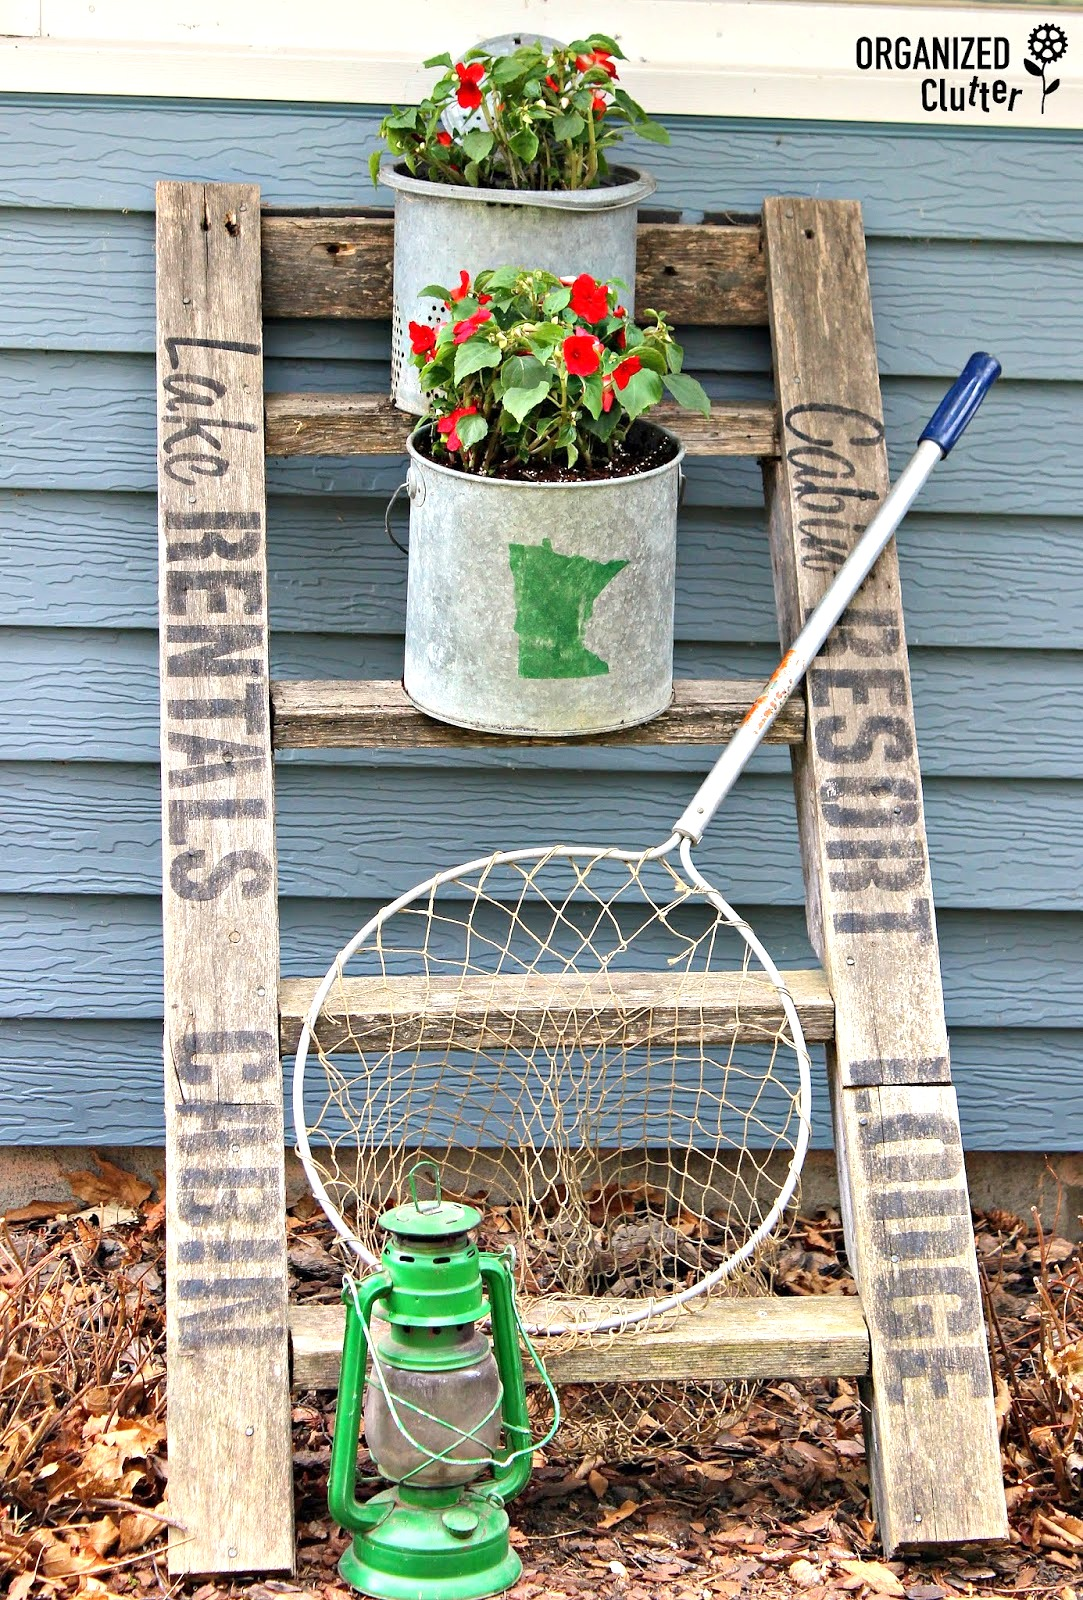 Cabin and lake themed junk garden ladder plant stand by Organized Clutter, featured on Funky Junk Interiors